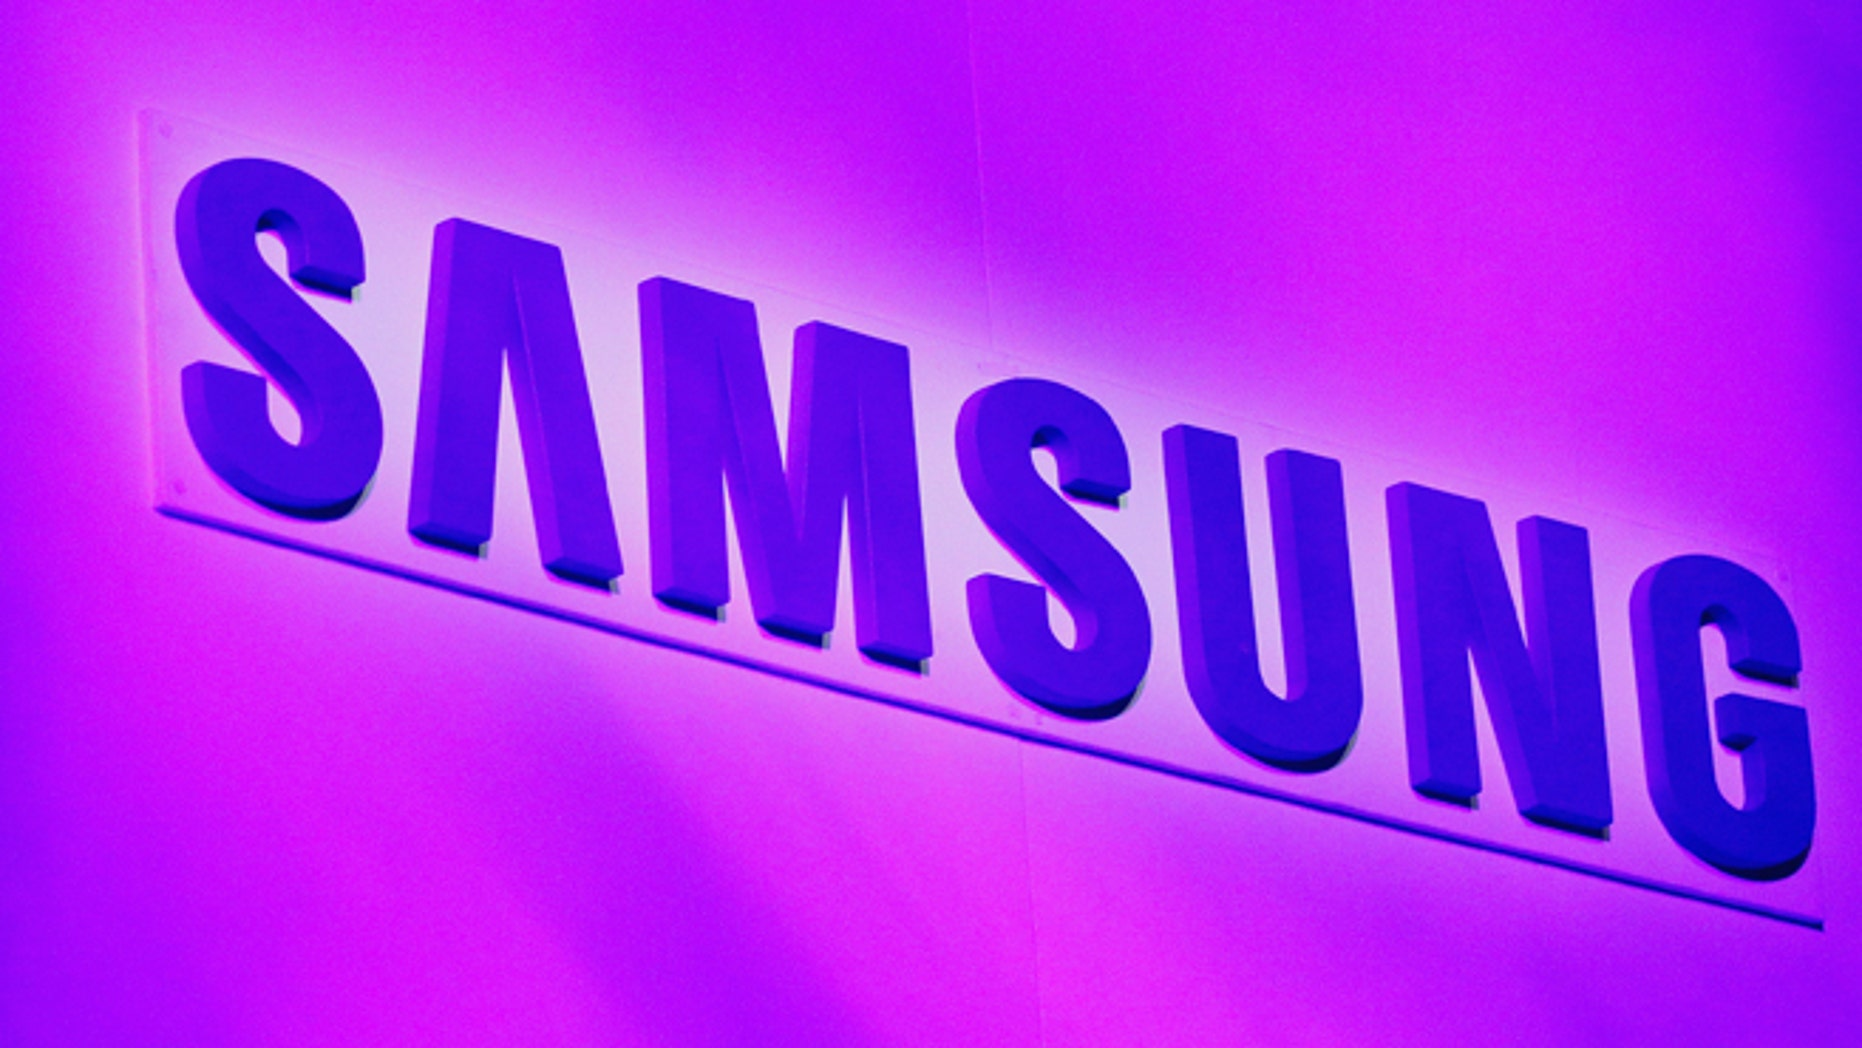 The company logo is displayed at the Samsung news conference at the Consumer Electronics Show (CES) in Las Vegas January 7, 2013.